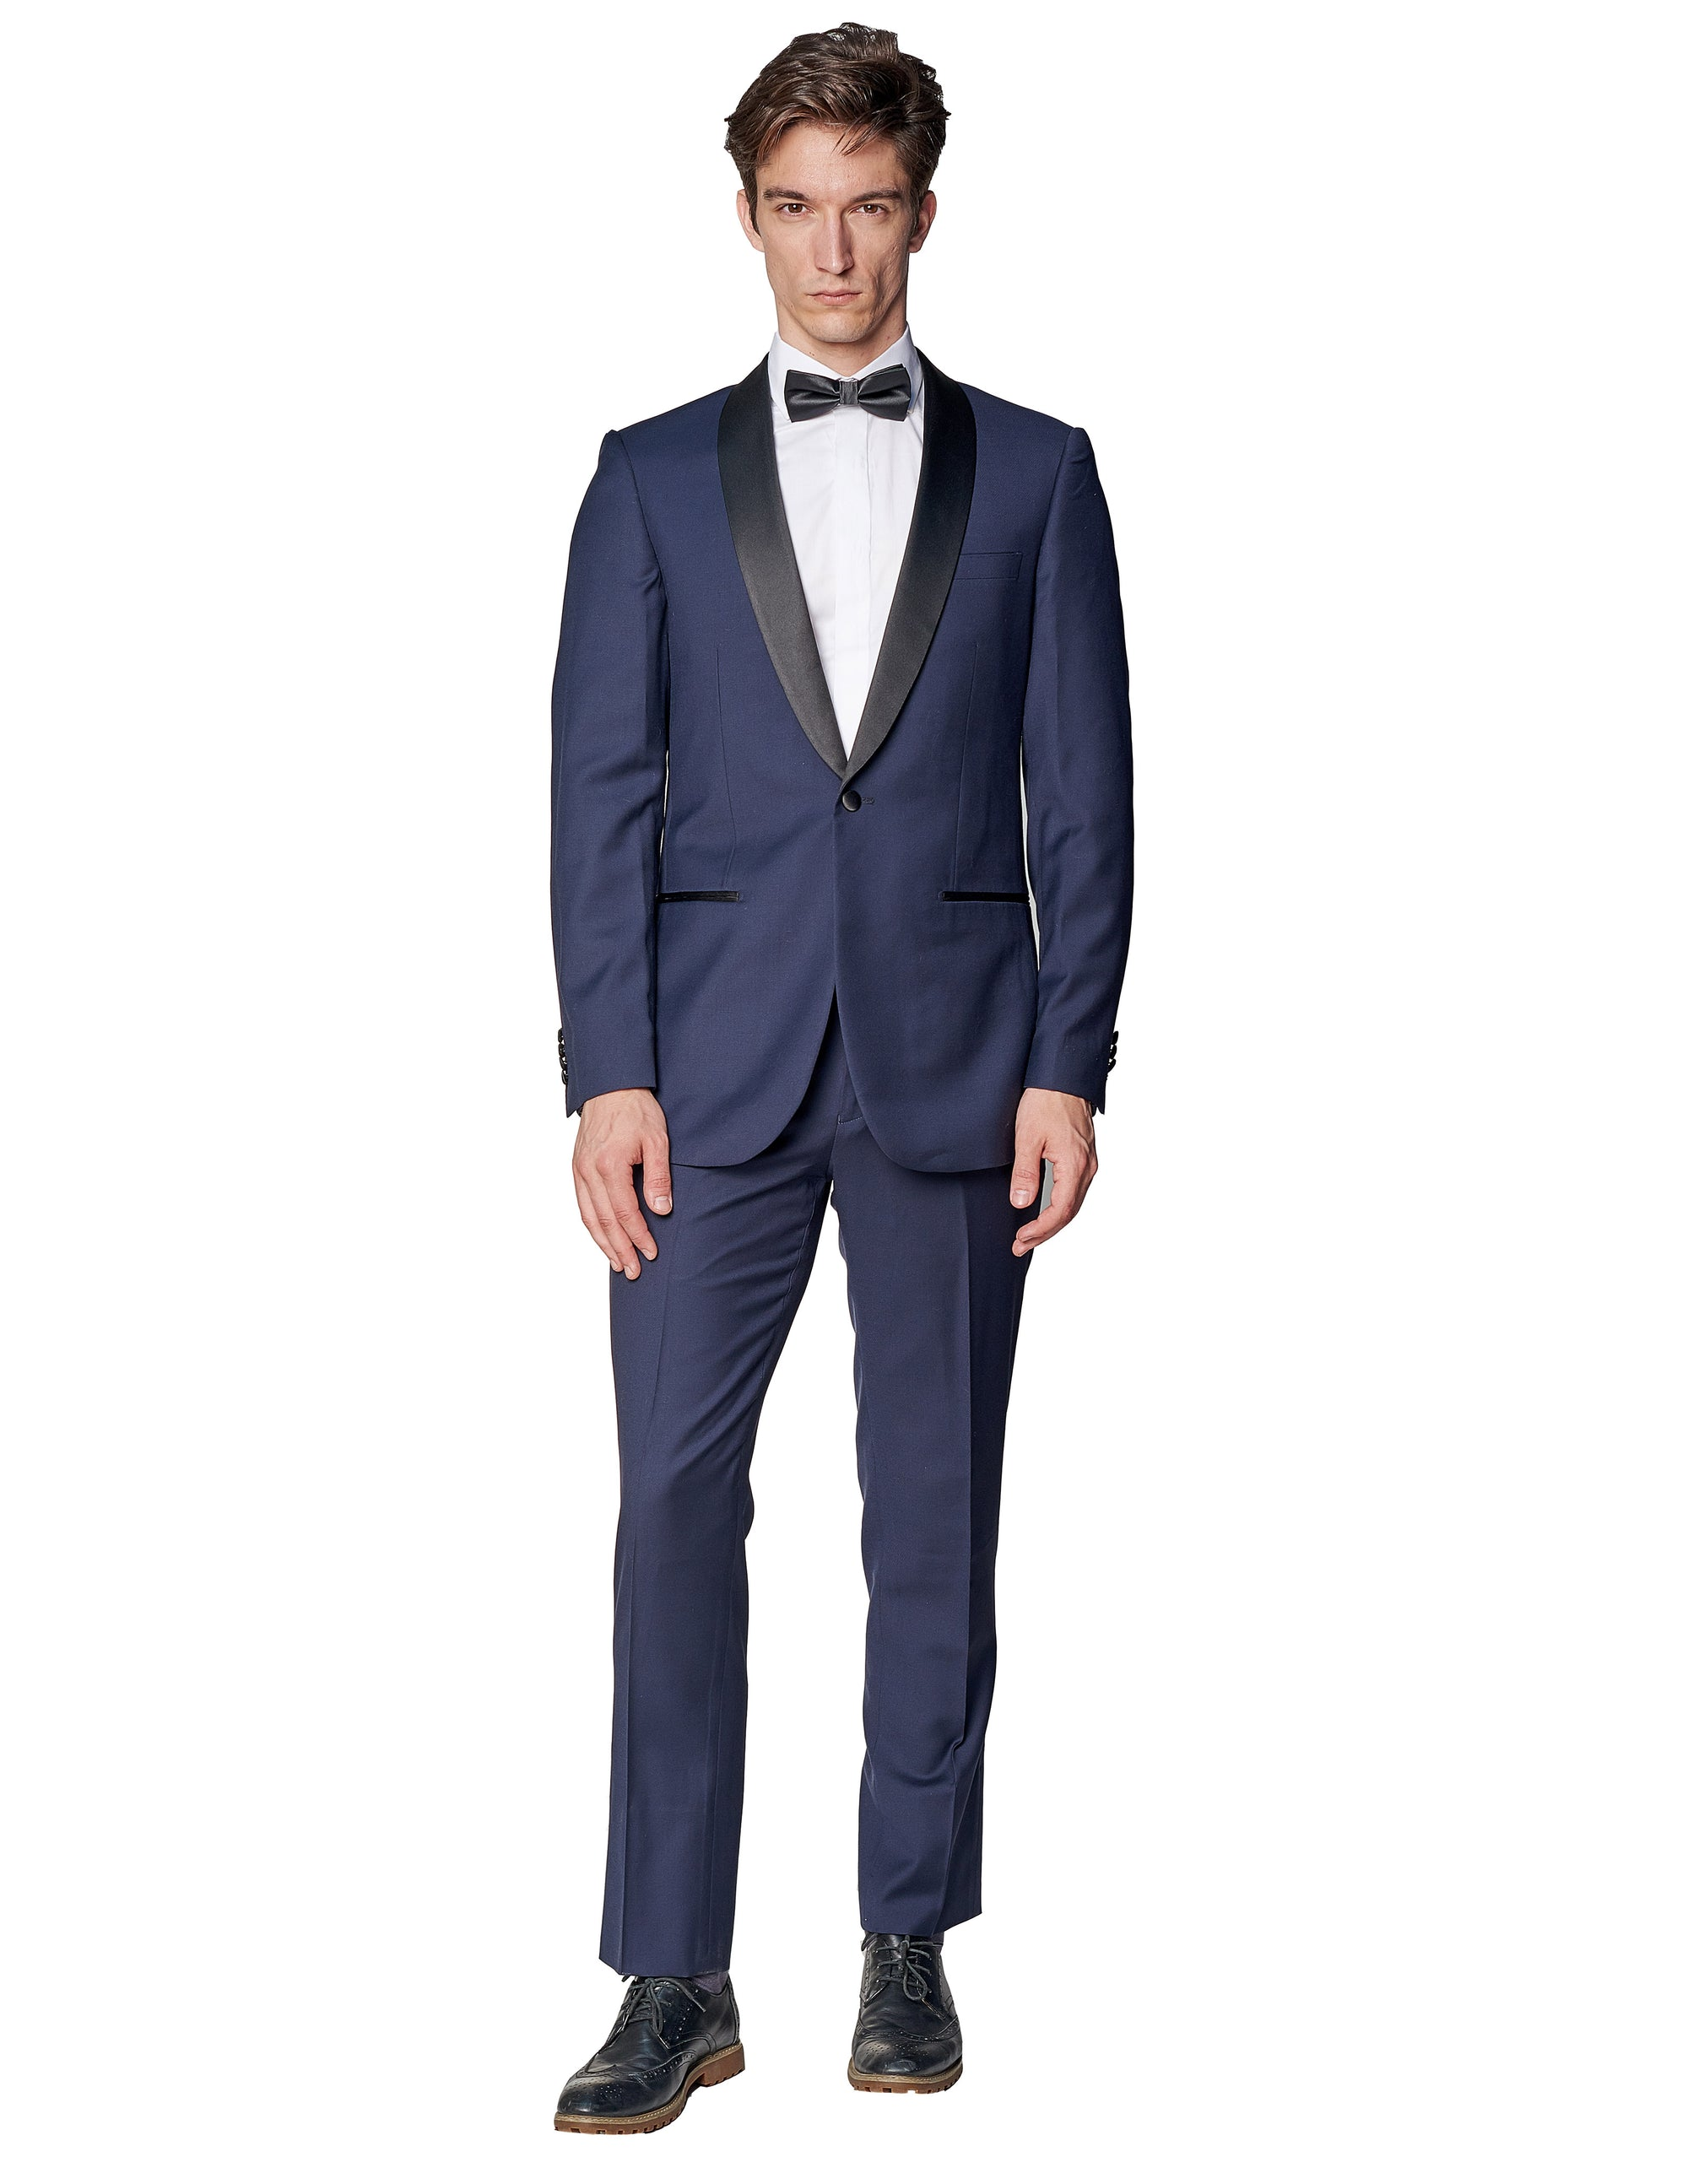 Navy Shawl Lapel Wool Tuxedo-The Suit Spot-Wedding Suits-Wedding Tuxedos-Groomsmen Suits-Groomsmen Tuxedos-Slim Fit Suits-Slim Fit Tuxedos-Online wedding suits